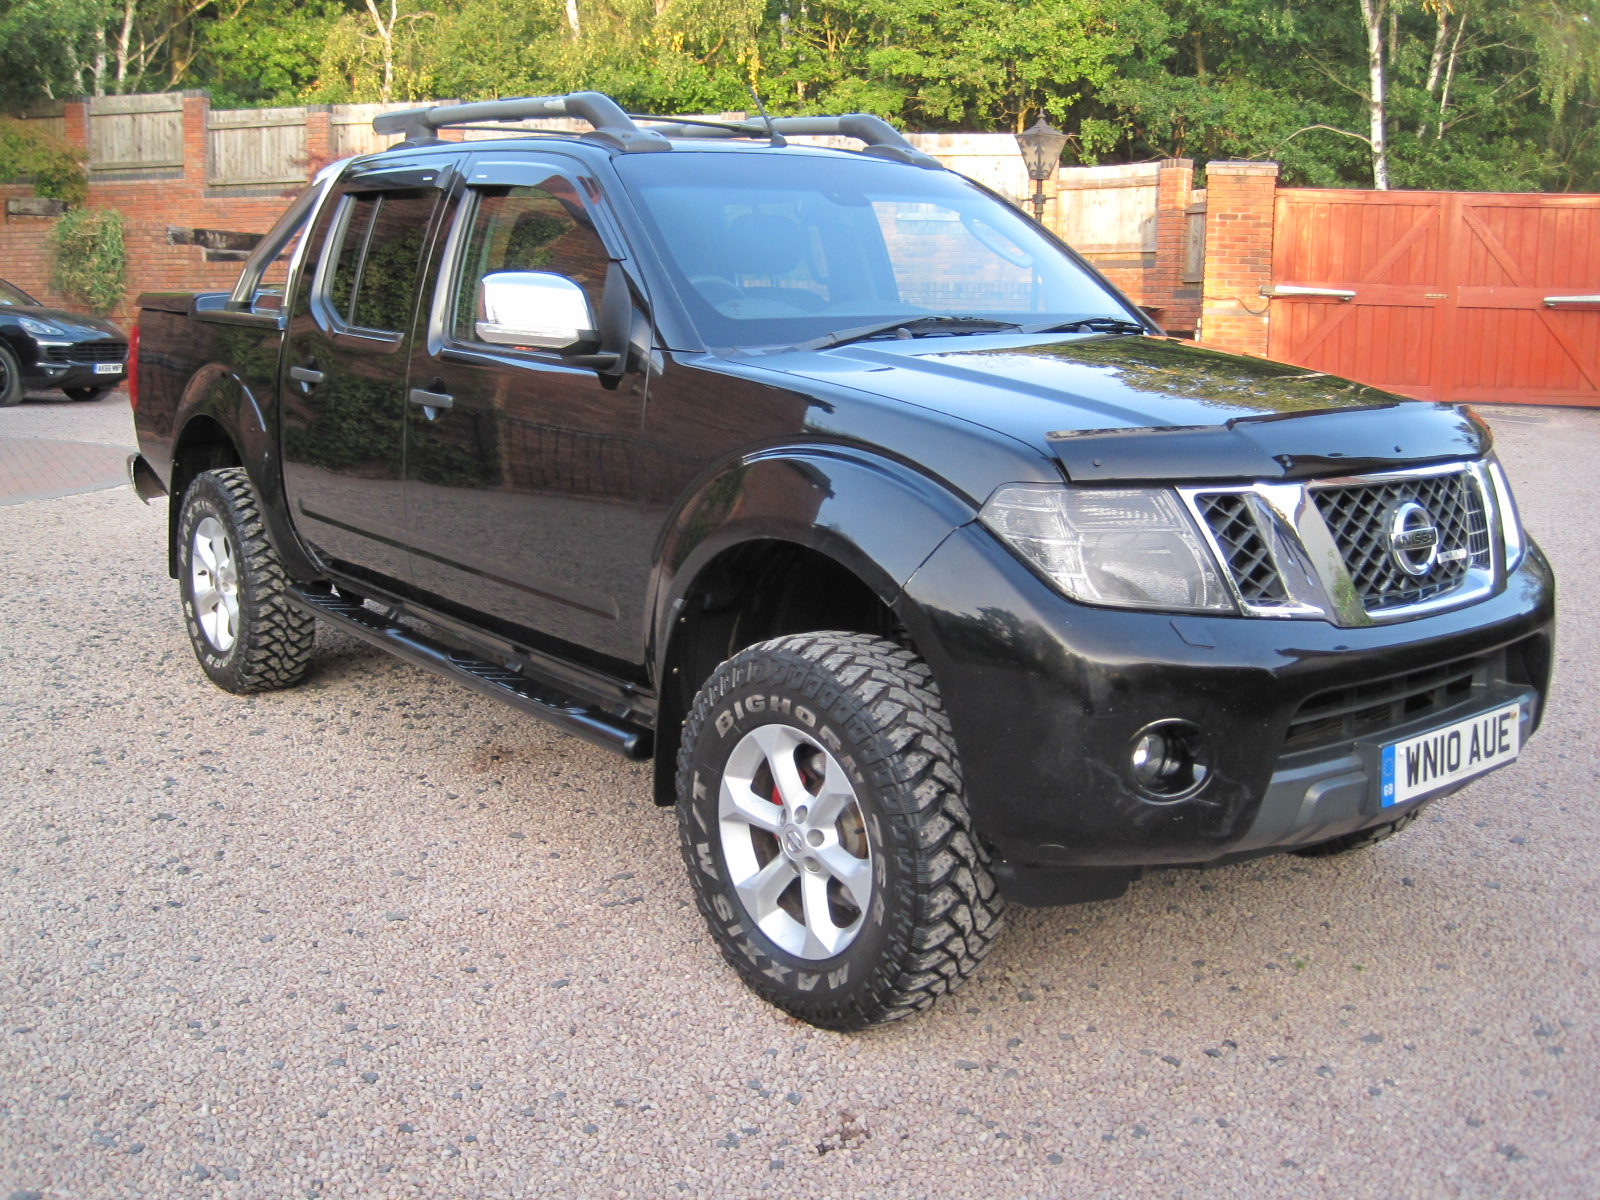 2010 10 Nissan Navara 2.5 dCi Tekna Premium Connect Double Cab Pickup  STUNNING LOOKING TRUCK! NO VAT!